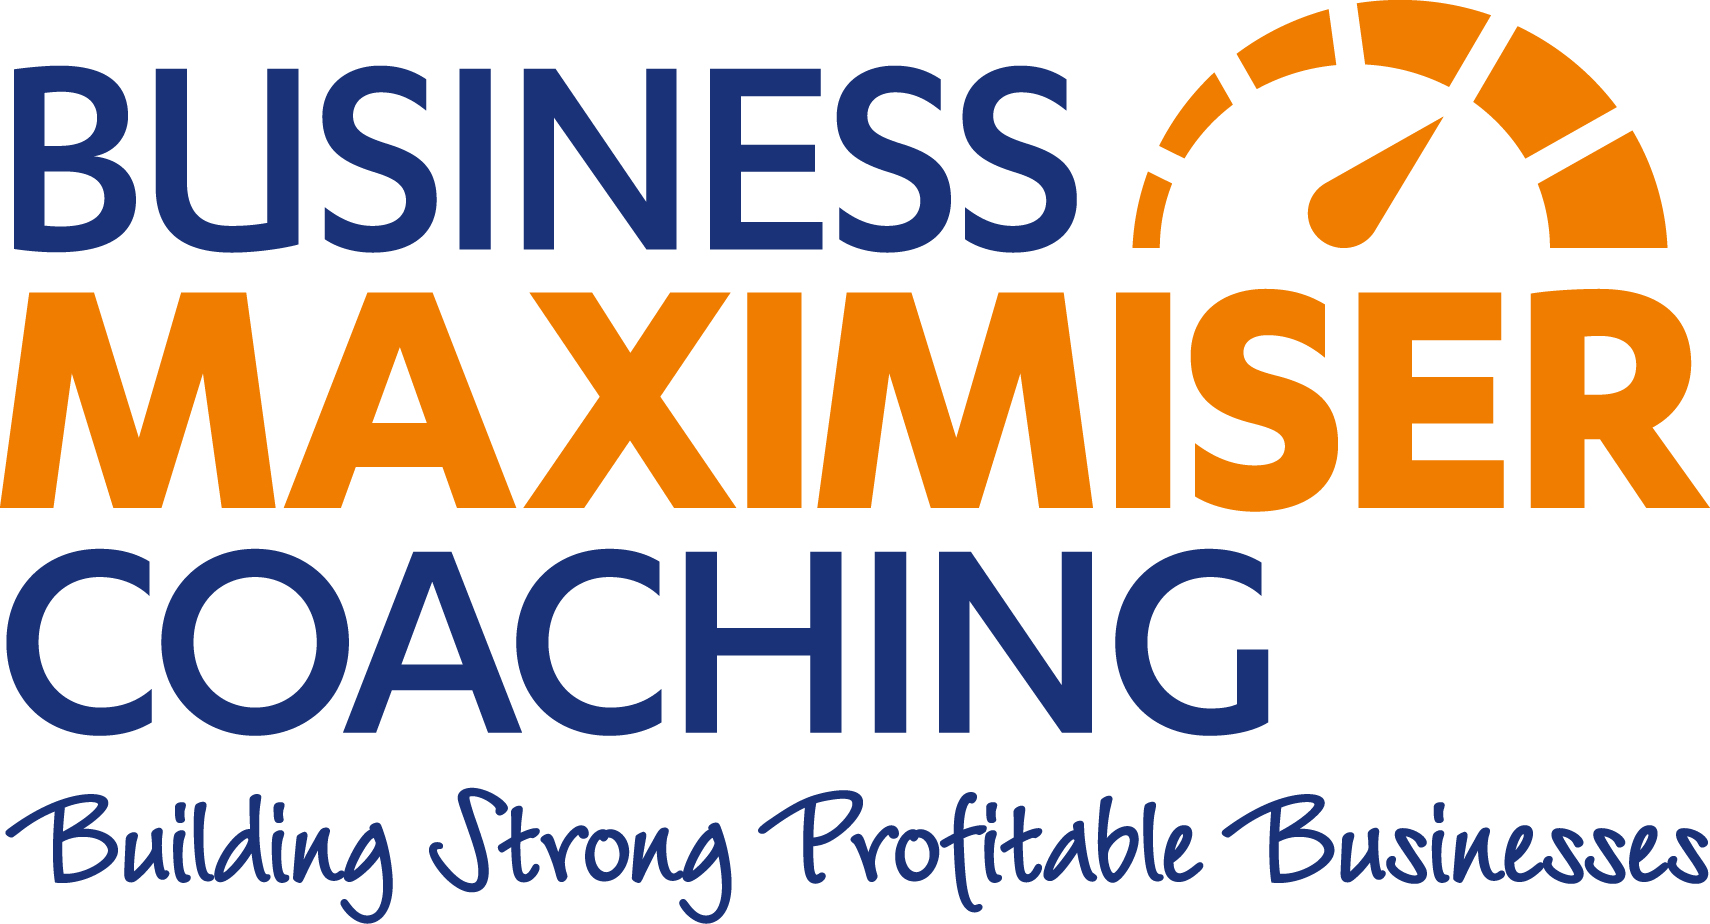 Business Maximiser Coaching